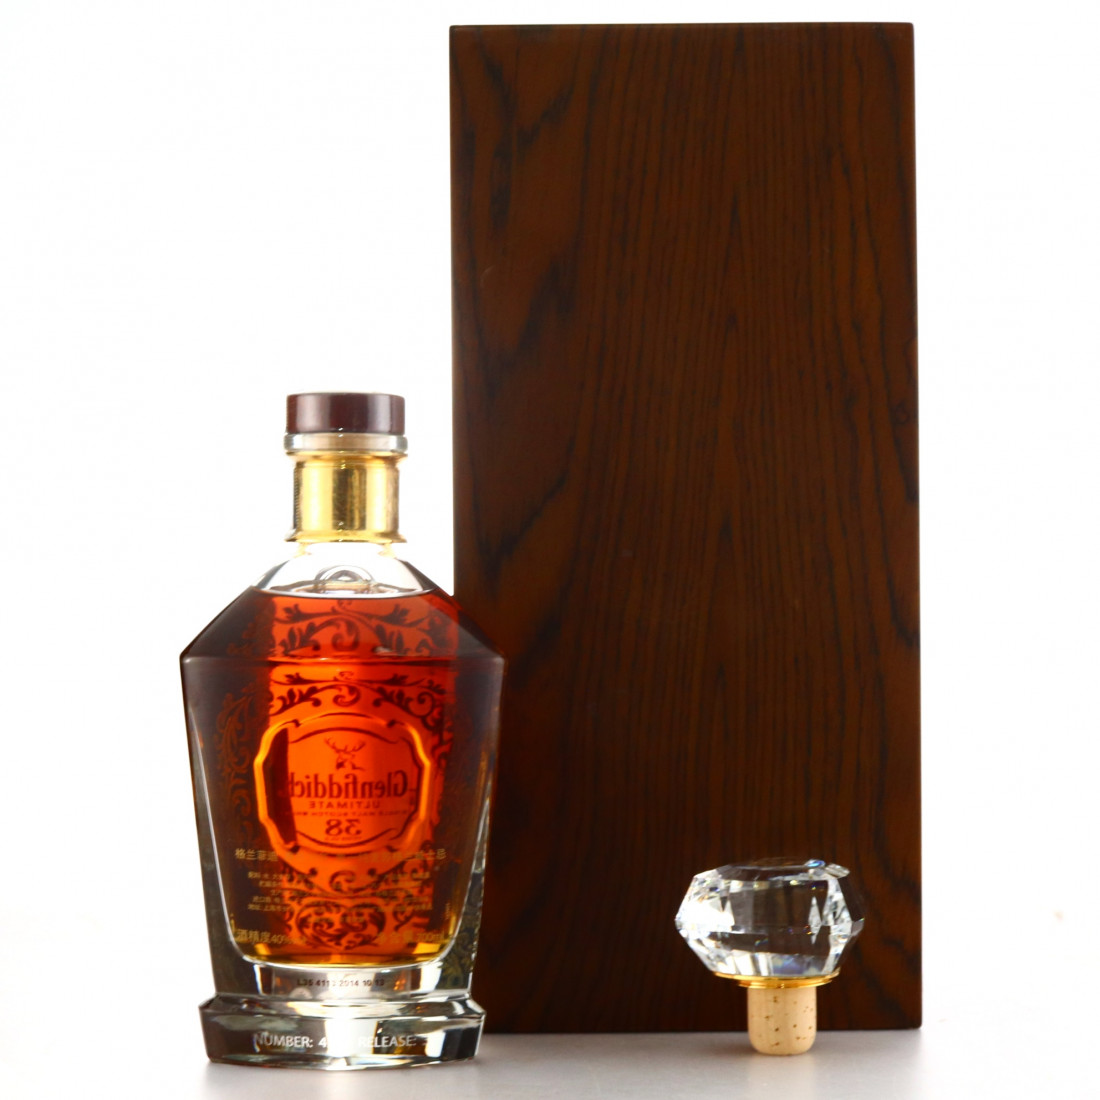 Glenfiddich Ultimate 38 Year Old